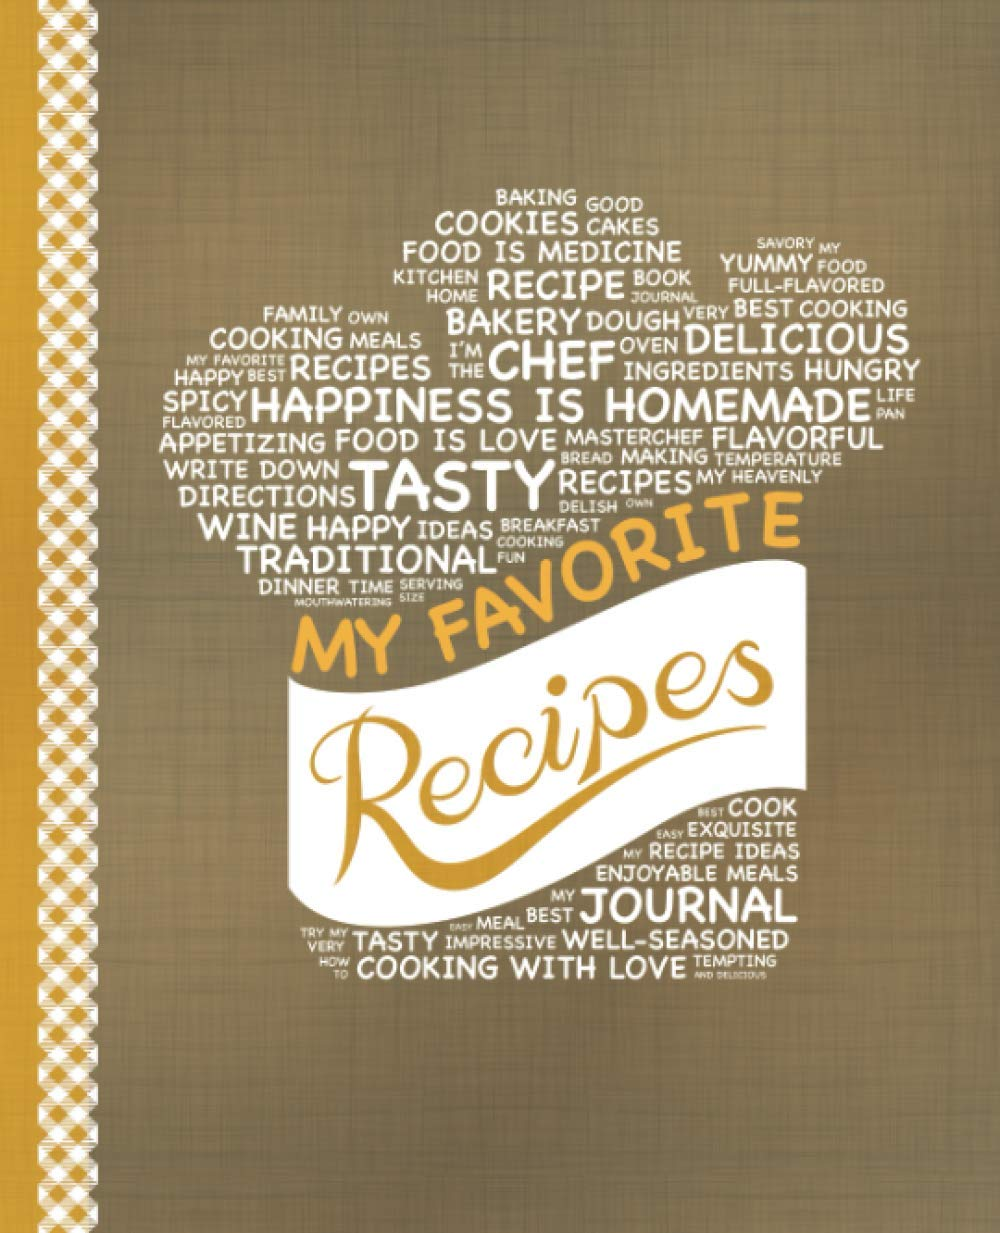 Amazon Com My Favorite Recipes Blank Recipe Book To Write In Collect The Recipes You Love In Your Own Custom Cookbook 100 Recipe Journal And Organizer 9781987514100 Happy Books Hub Books